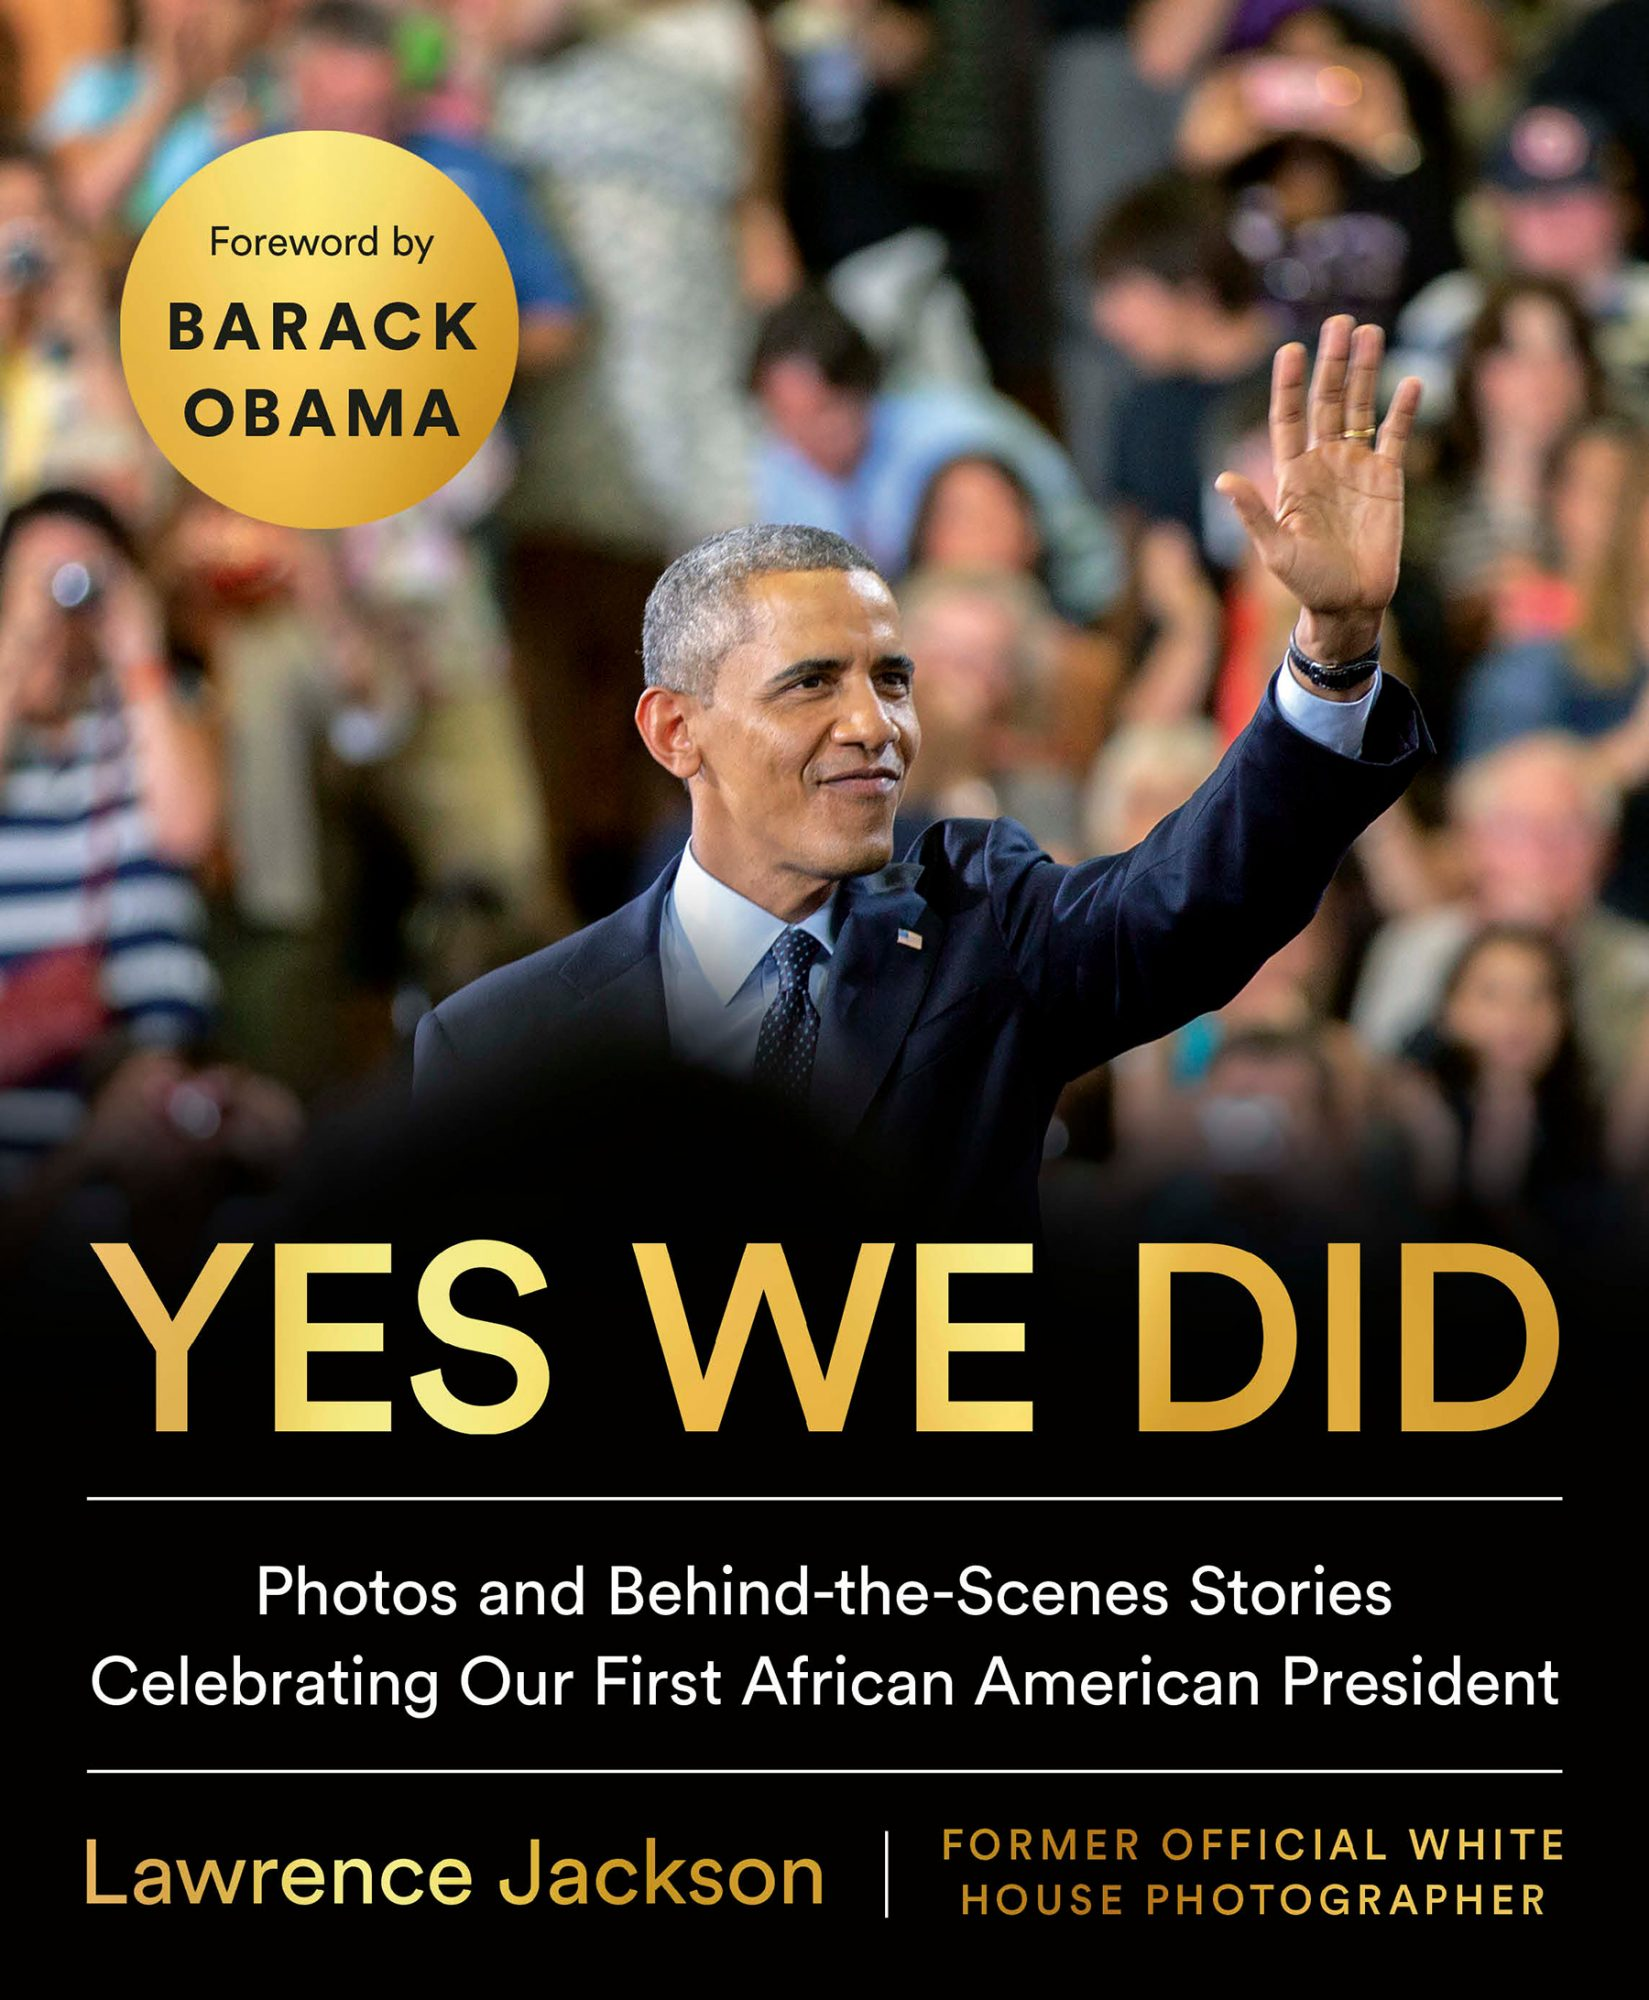 Yes We Did PHOTOS AND BEHIND-THE-SCENES STORIES CELEBRATING OUR FIRST AFRICAN AMERICAN PRESIDENT By LAWRENCE JACKSON